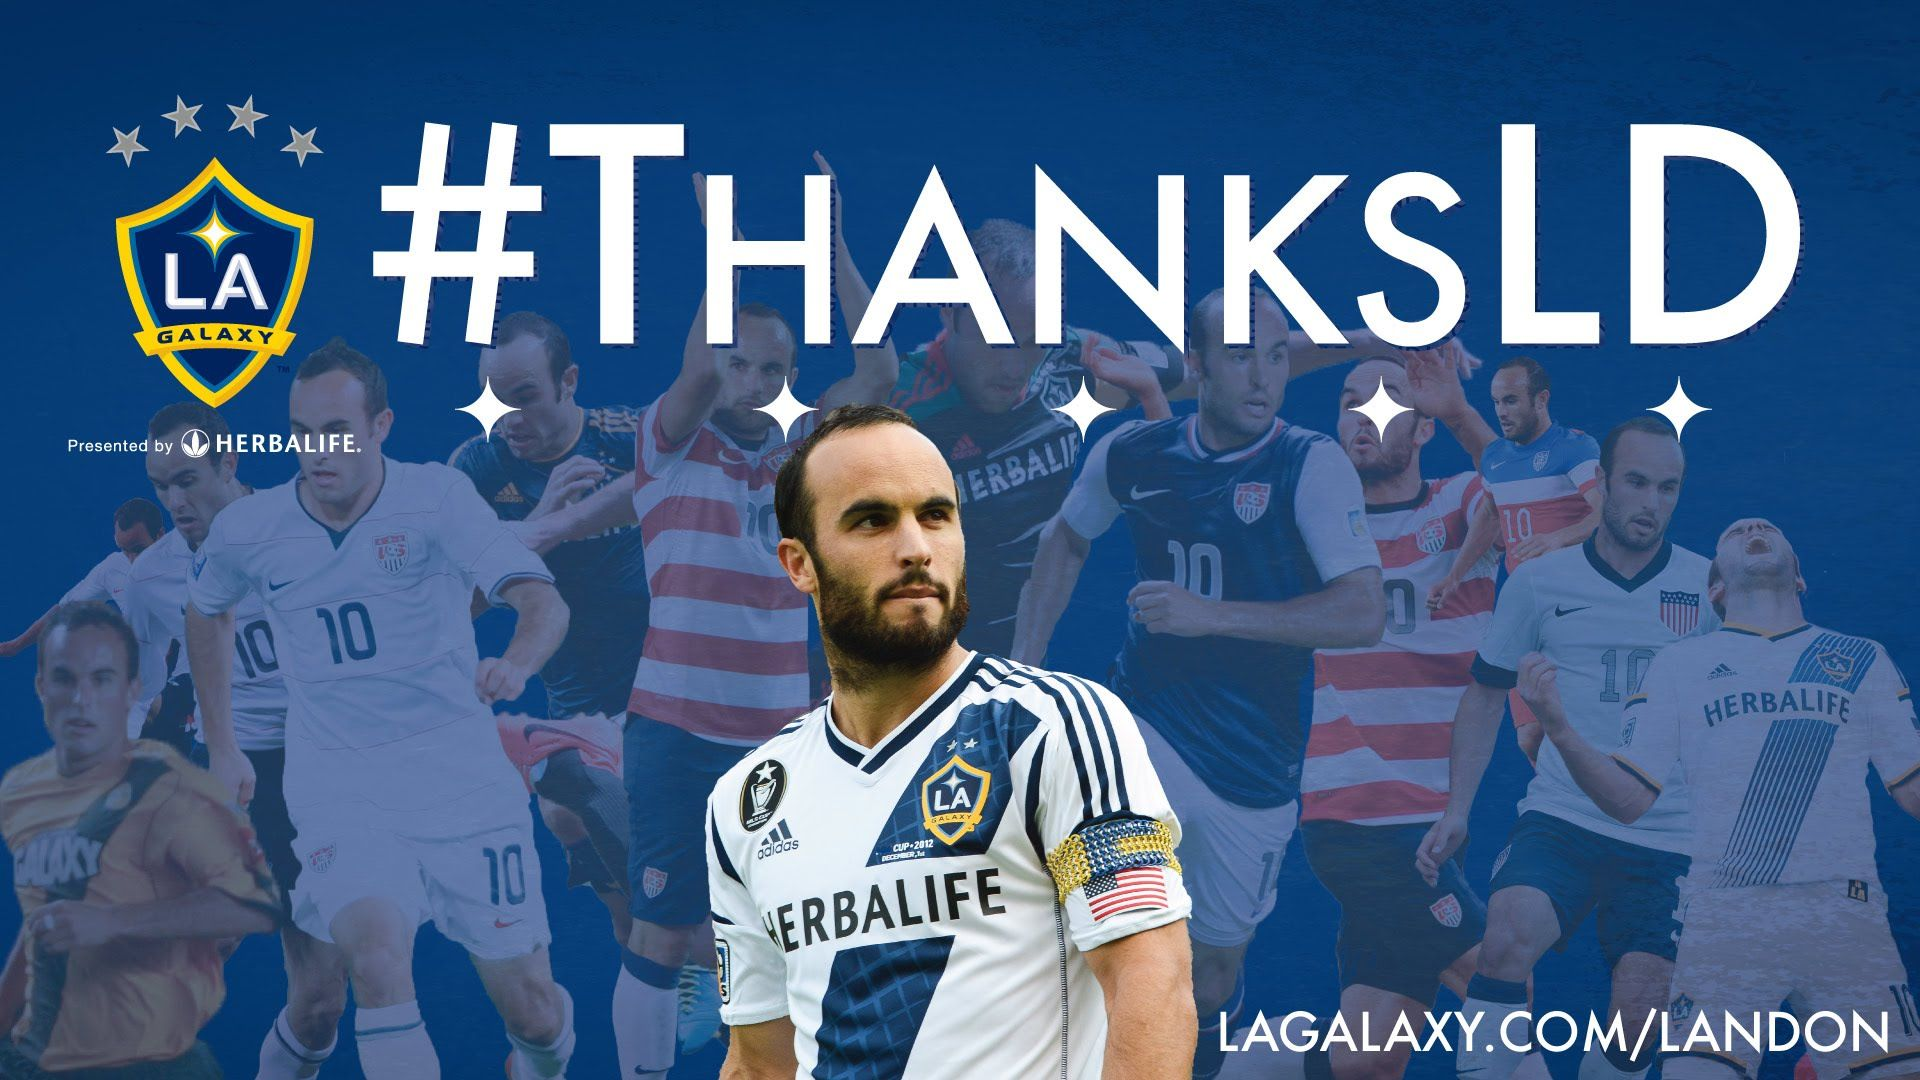 Landon Donovan | LEGEND #ThanksLD - YouTube